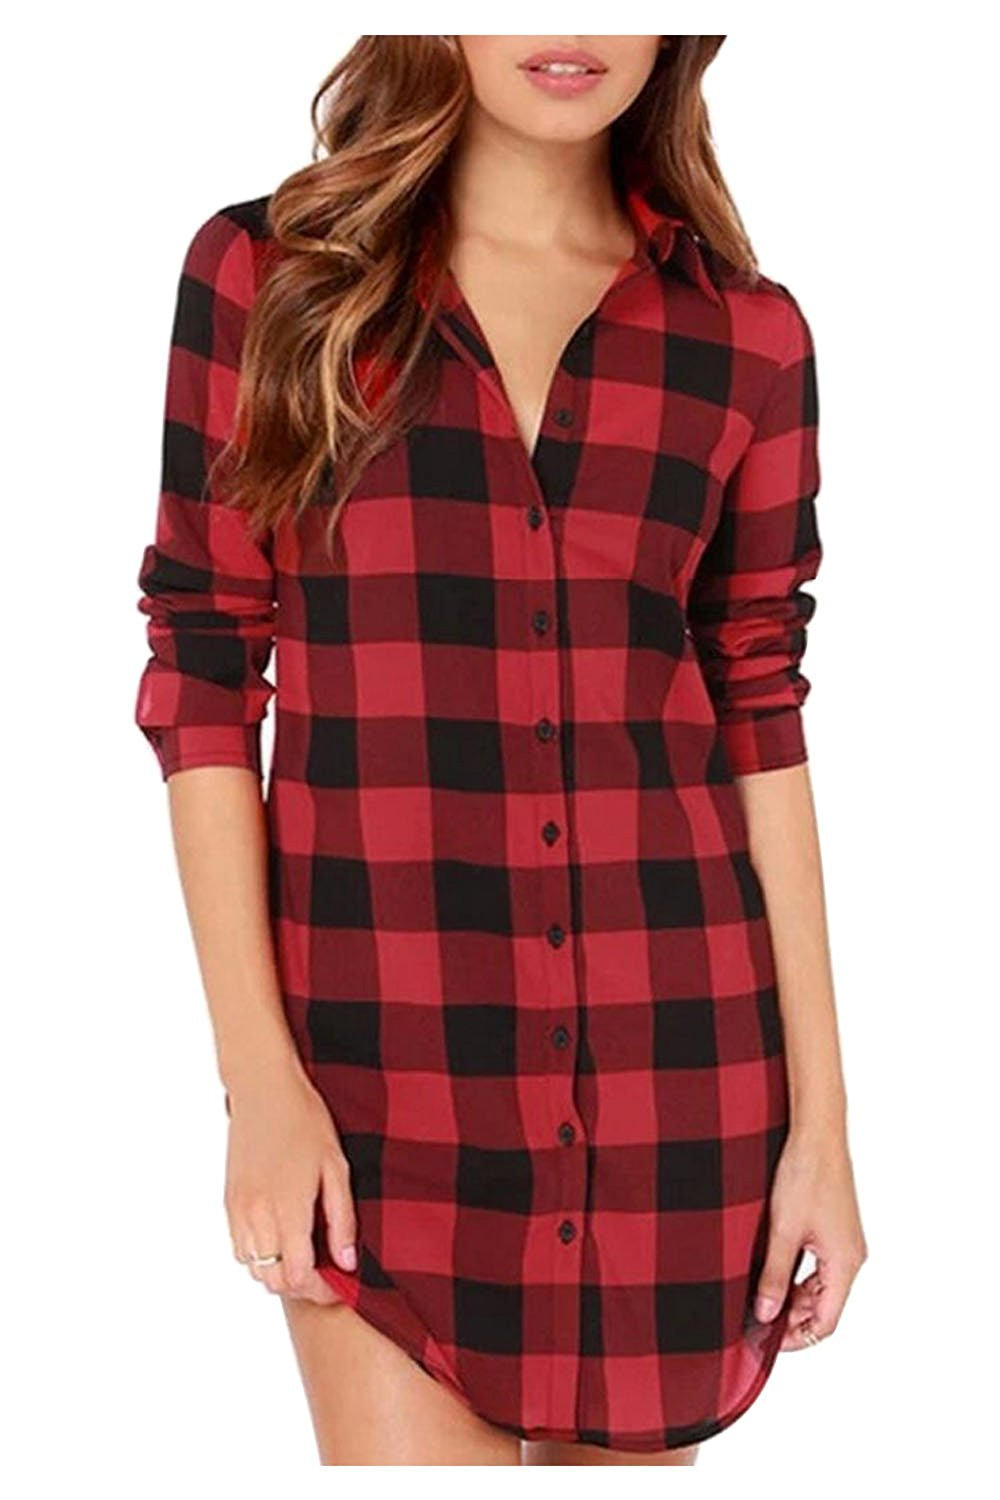 Get Quotations · Kumer Women s Plaid Shirt Buffalo Plaid Long Tunic Loose  Long Sleeve Casual Button Down Shirt Top 6905a1f4097